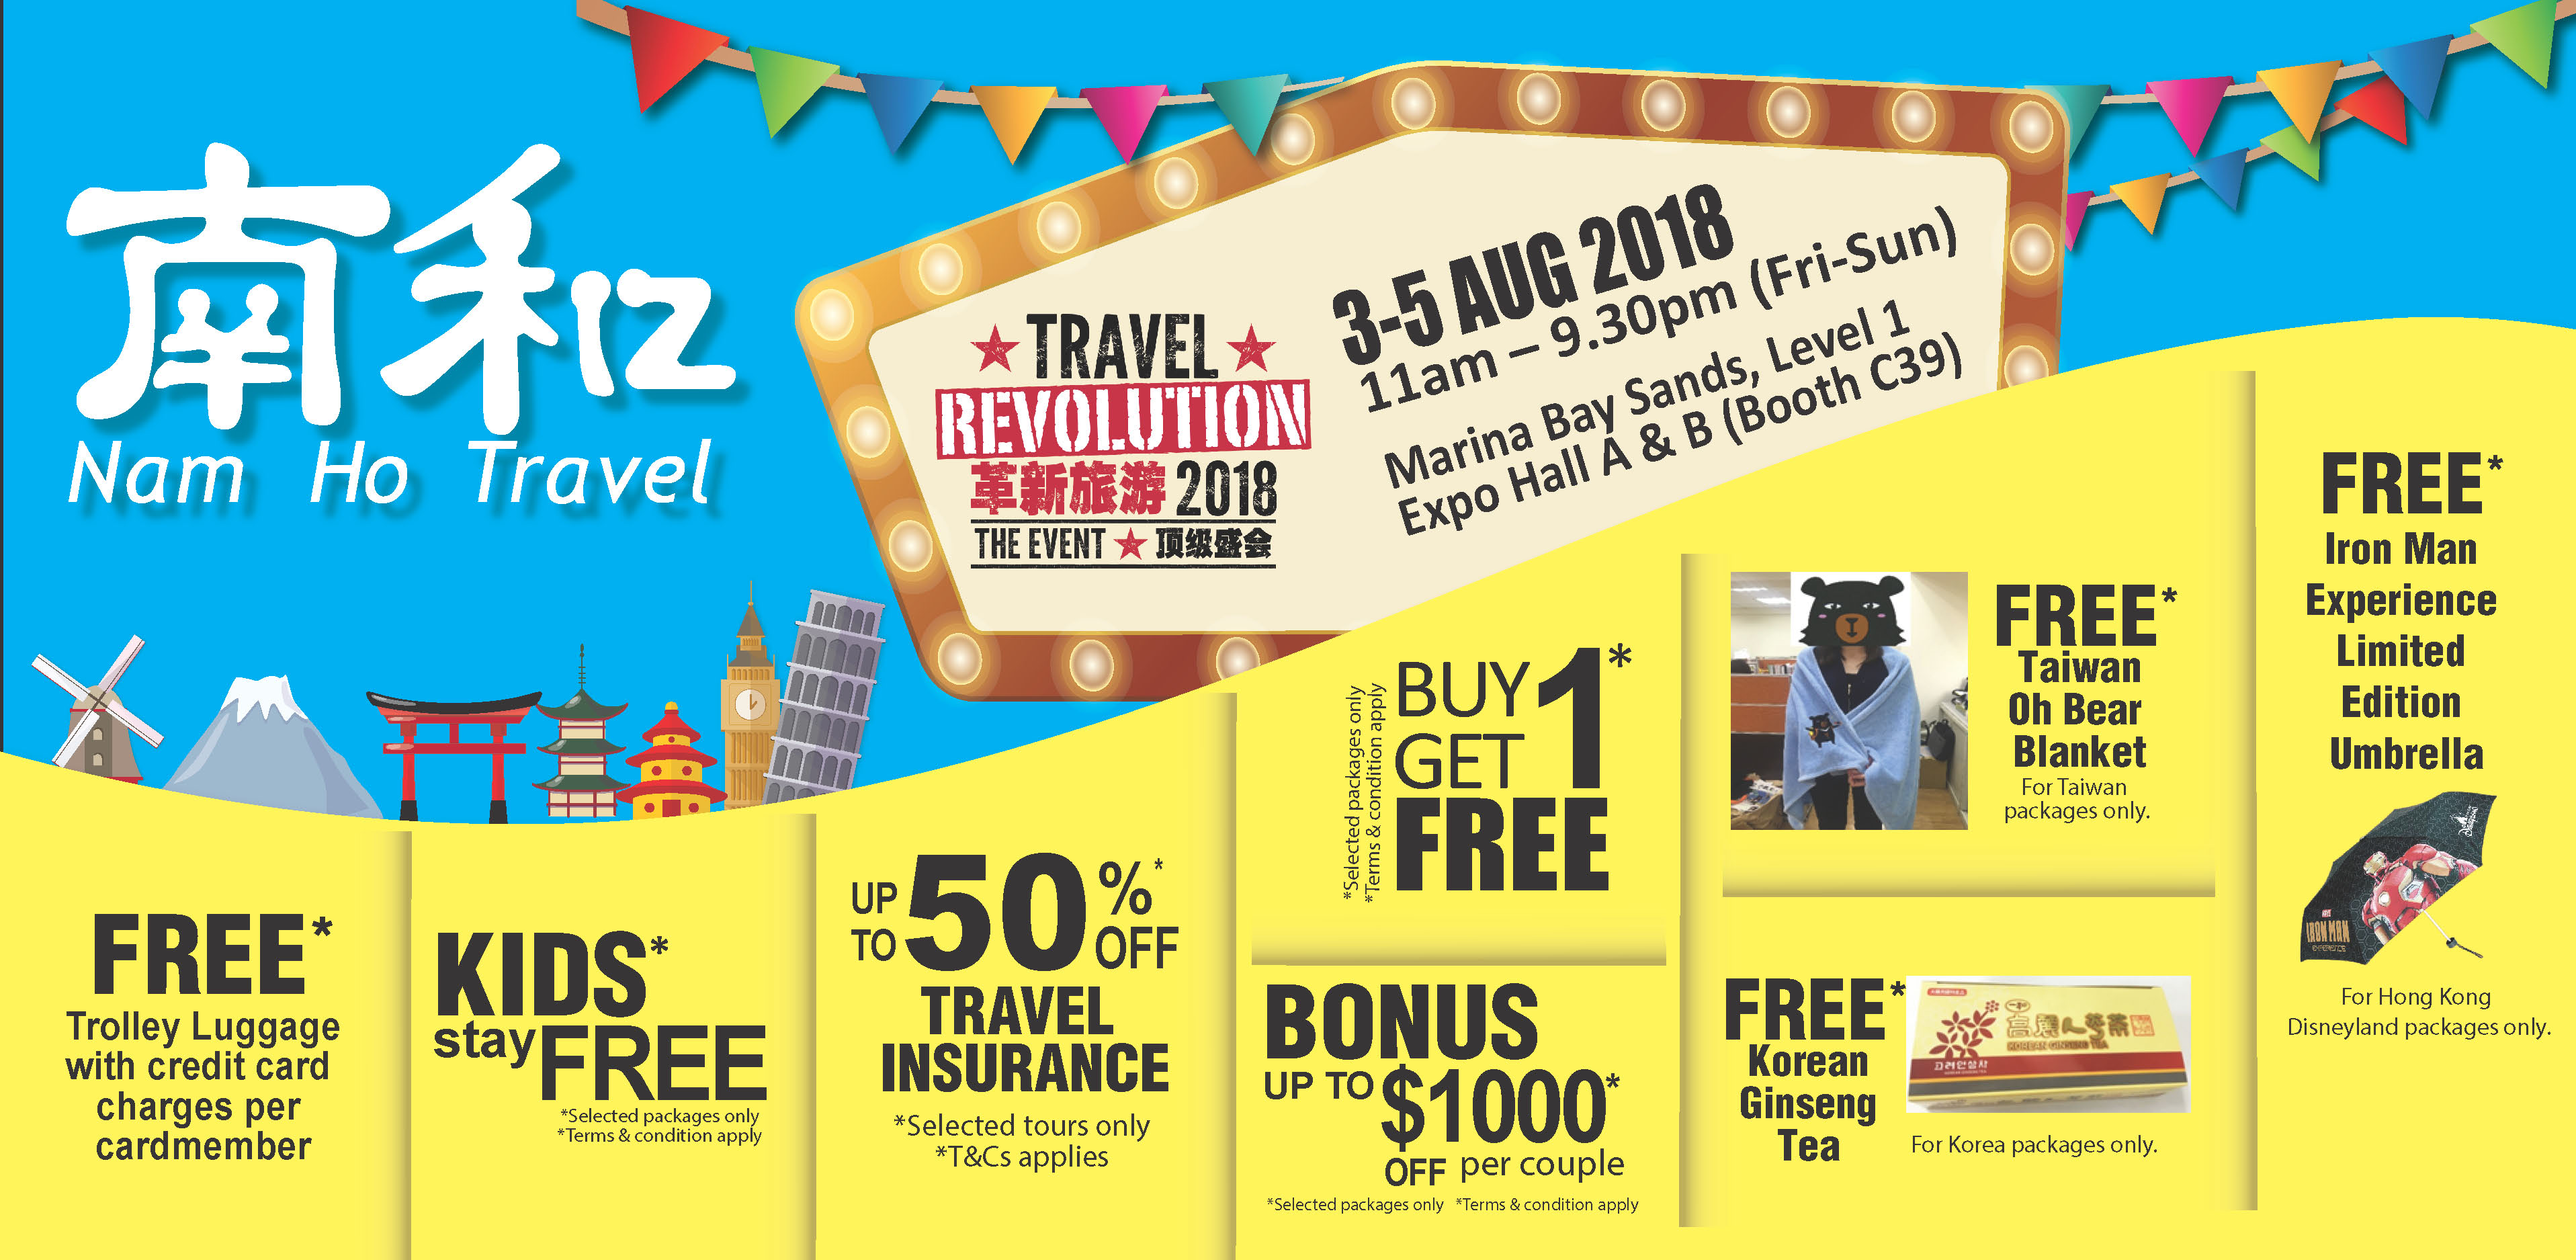 Nam Ho Travel - Travel Revolution August 2018